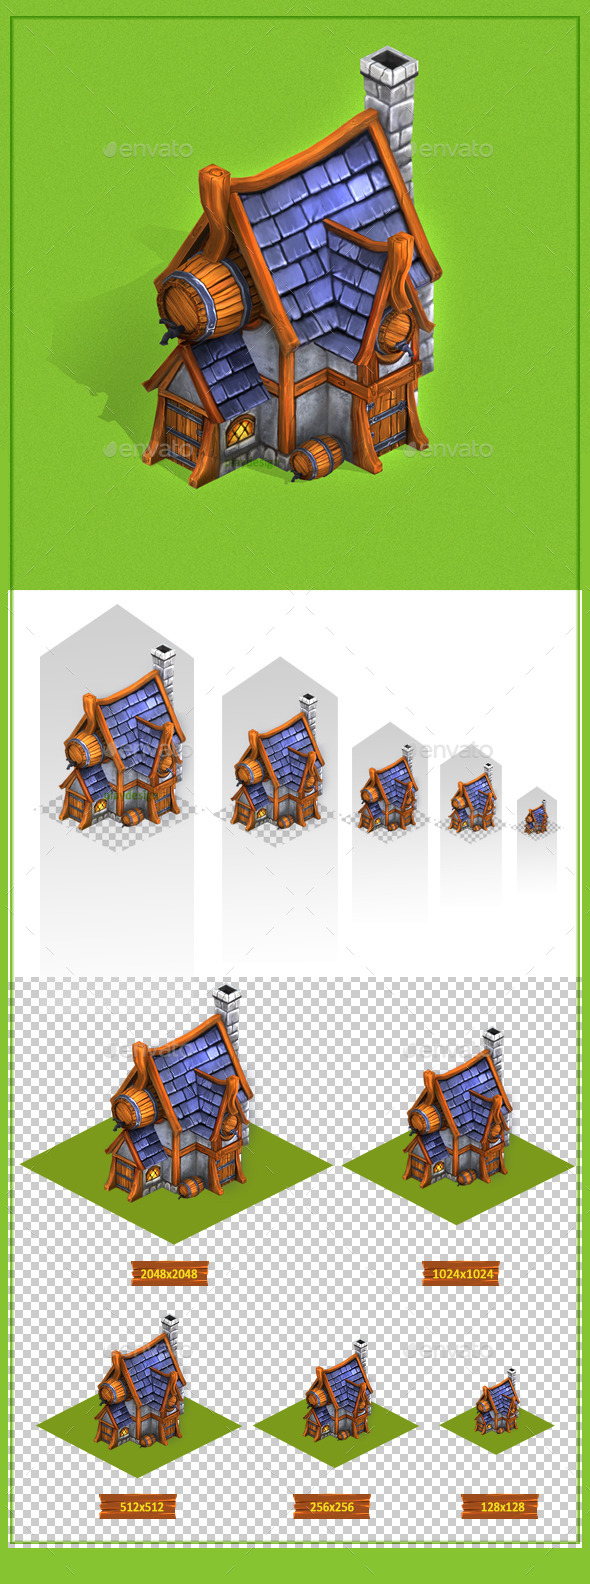 Tavern Tilesets - Architecture 3D Renders